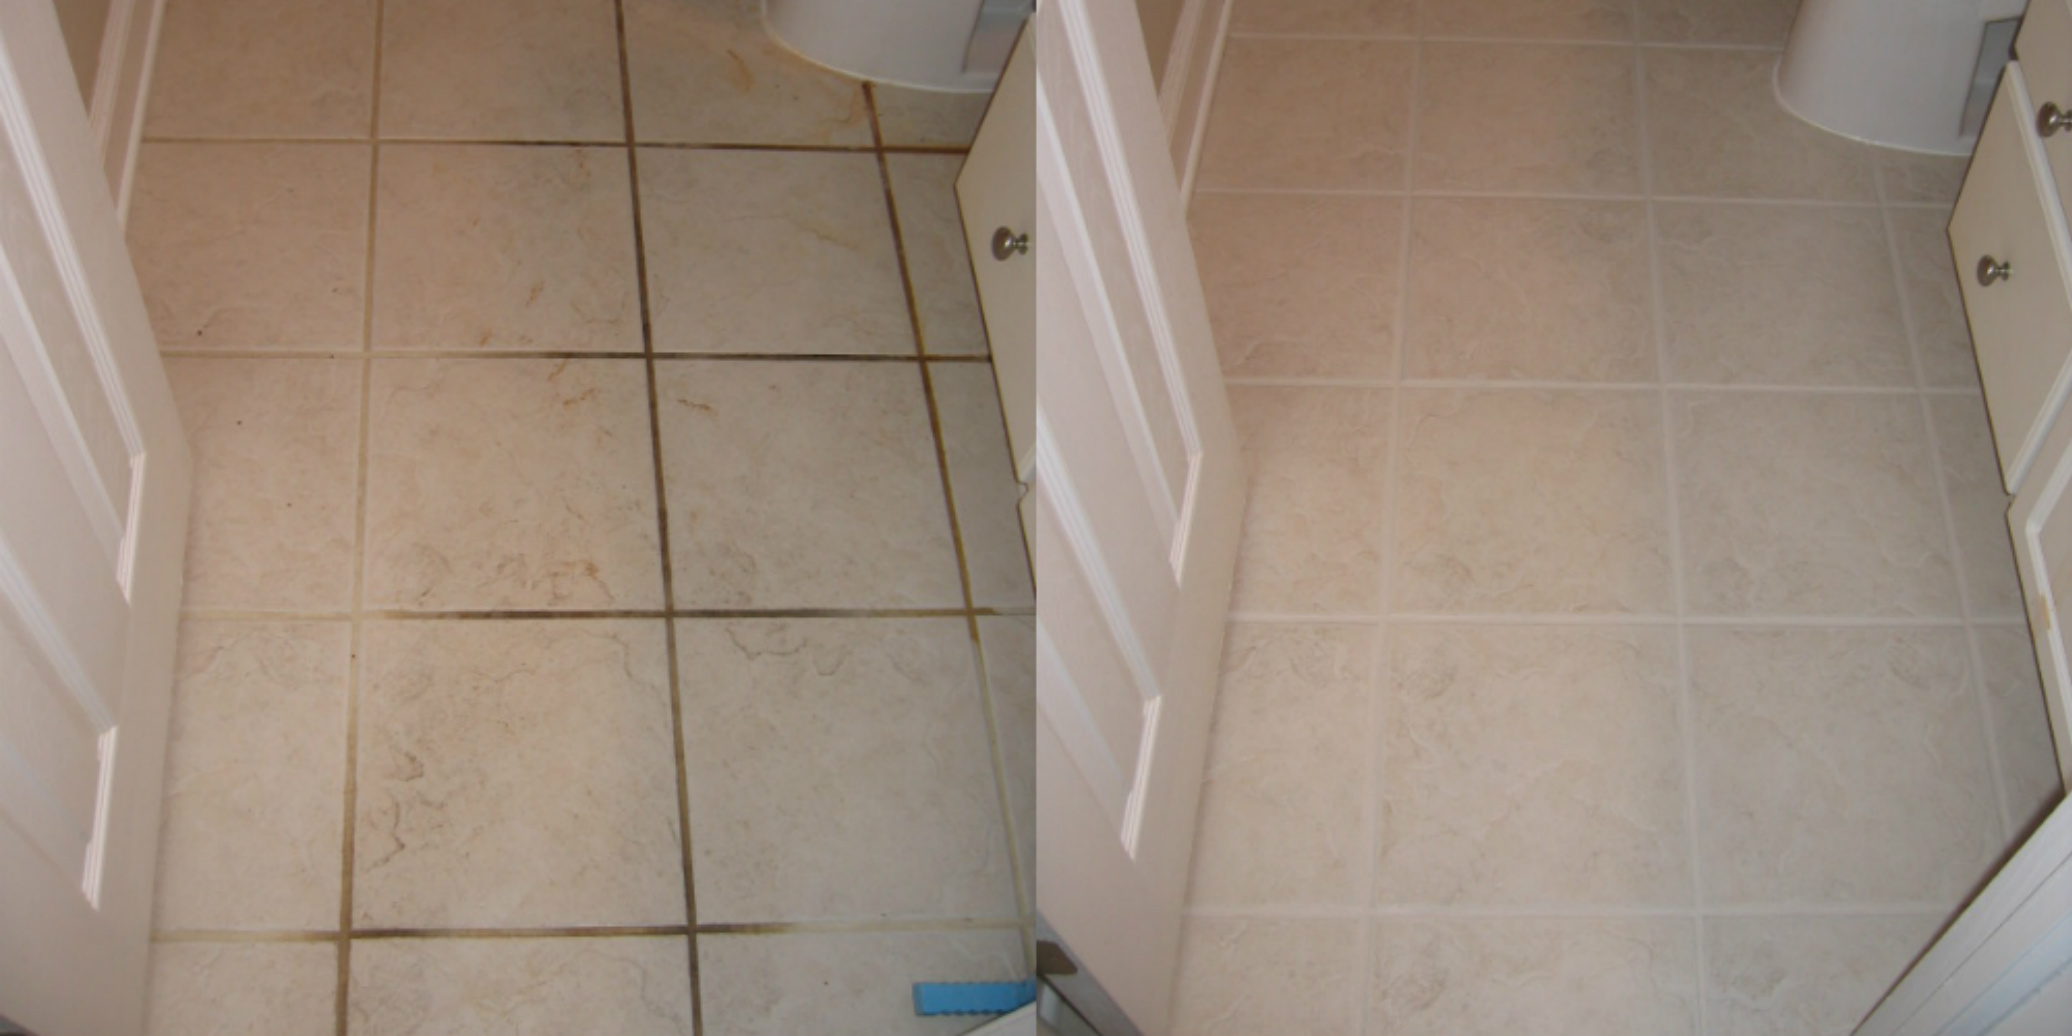 Tile and Grout Cleaning Services Fumina South